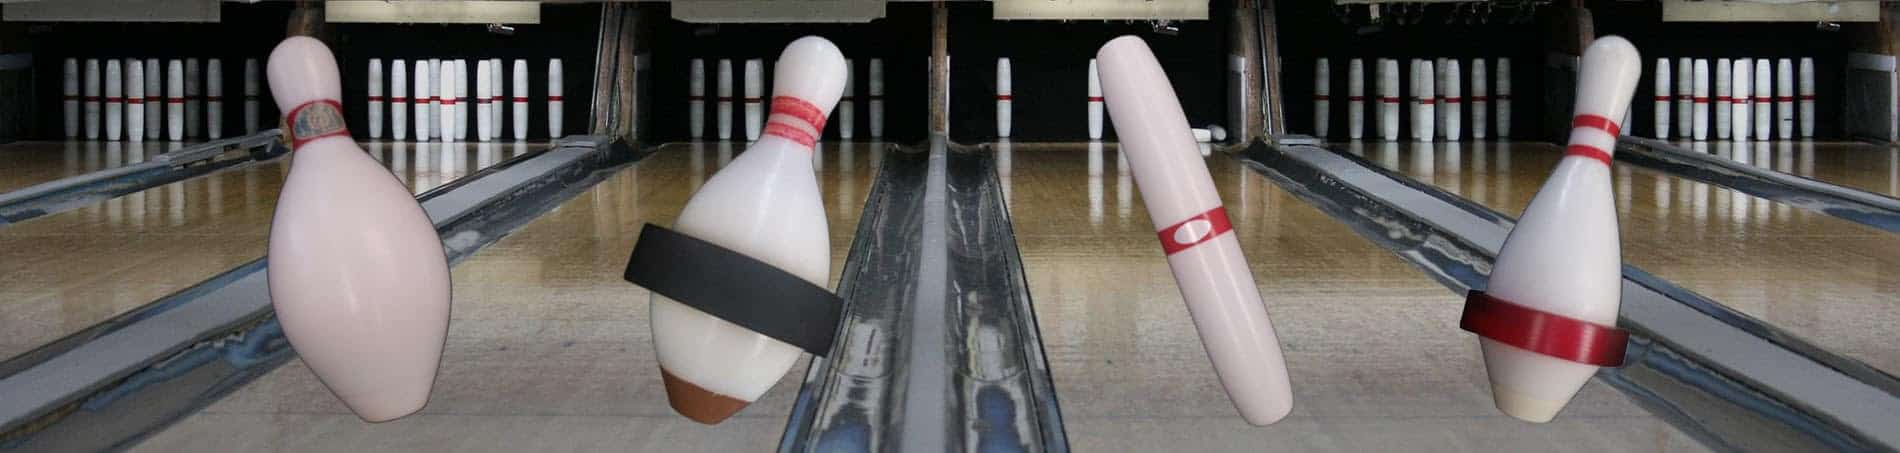 Bowling - EPCO Manufacturing